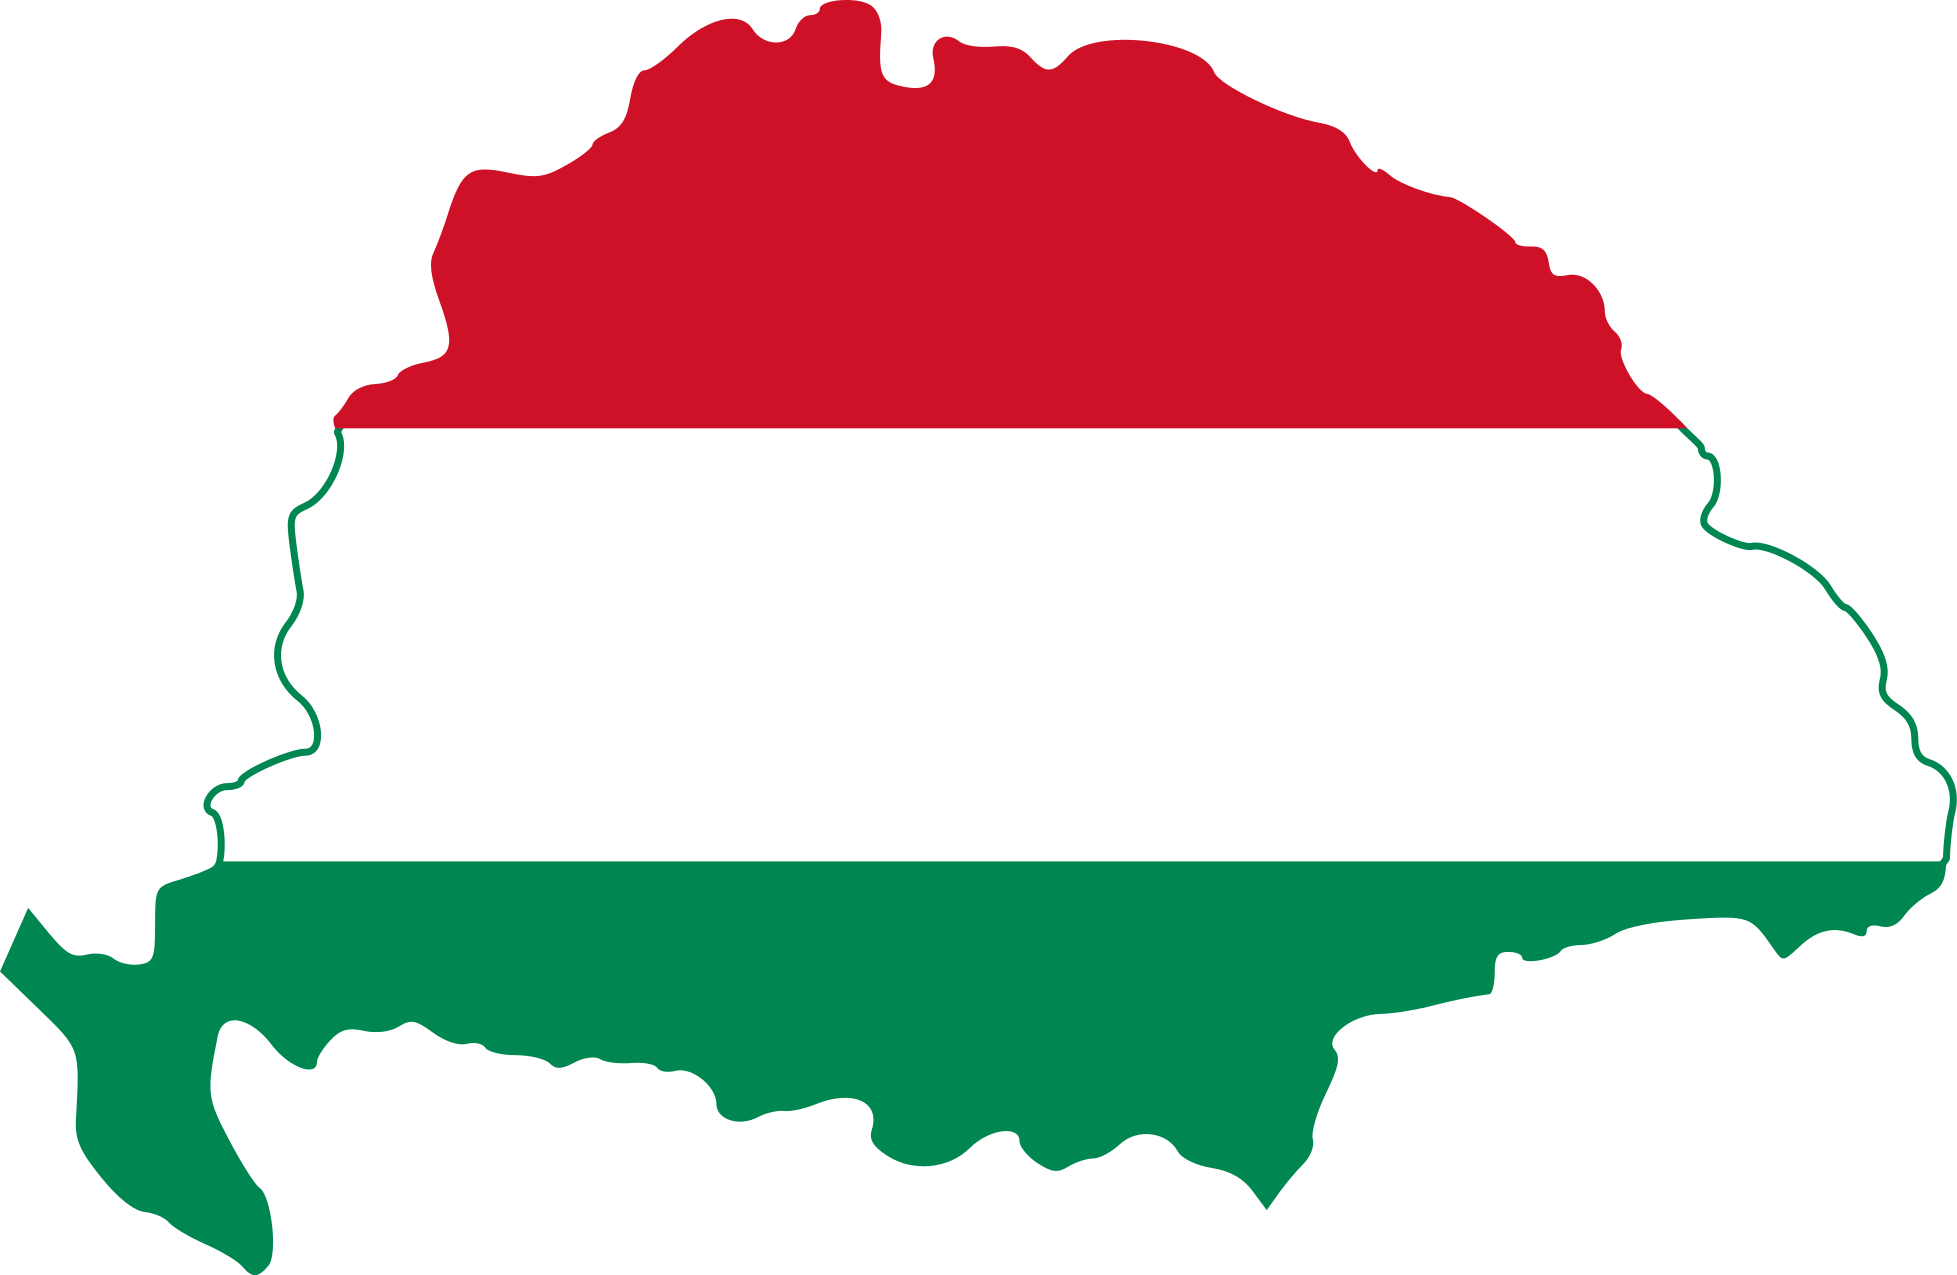 Hungarian flag clipart.